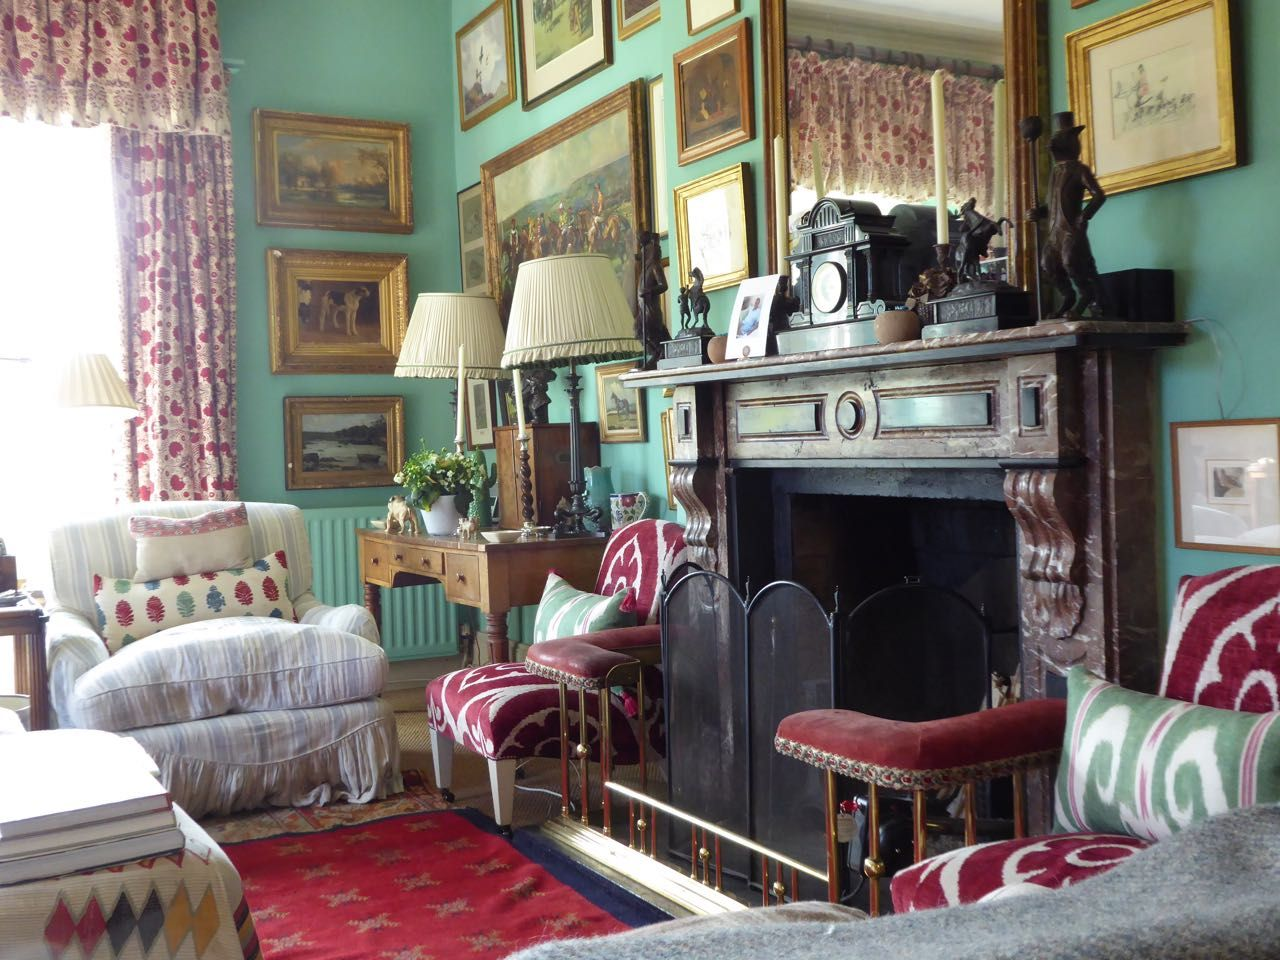 Cozy English And World Styled Sitting Room With: Very English Sitting Room With Great Mix Of Antiques And